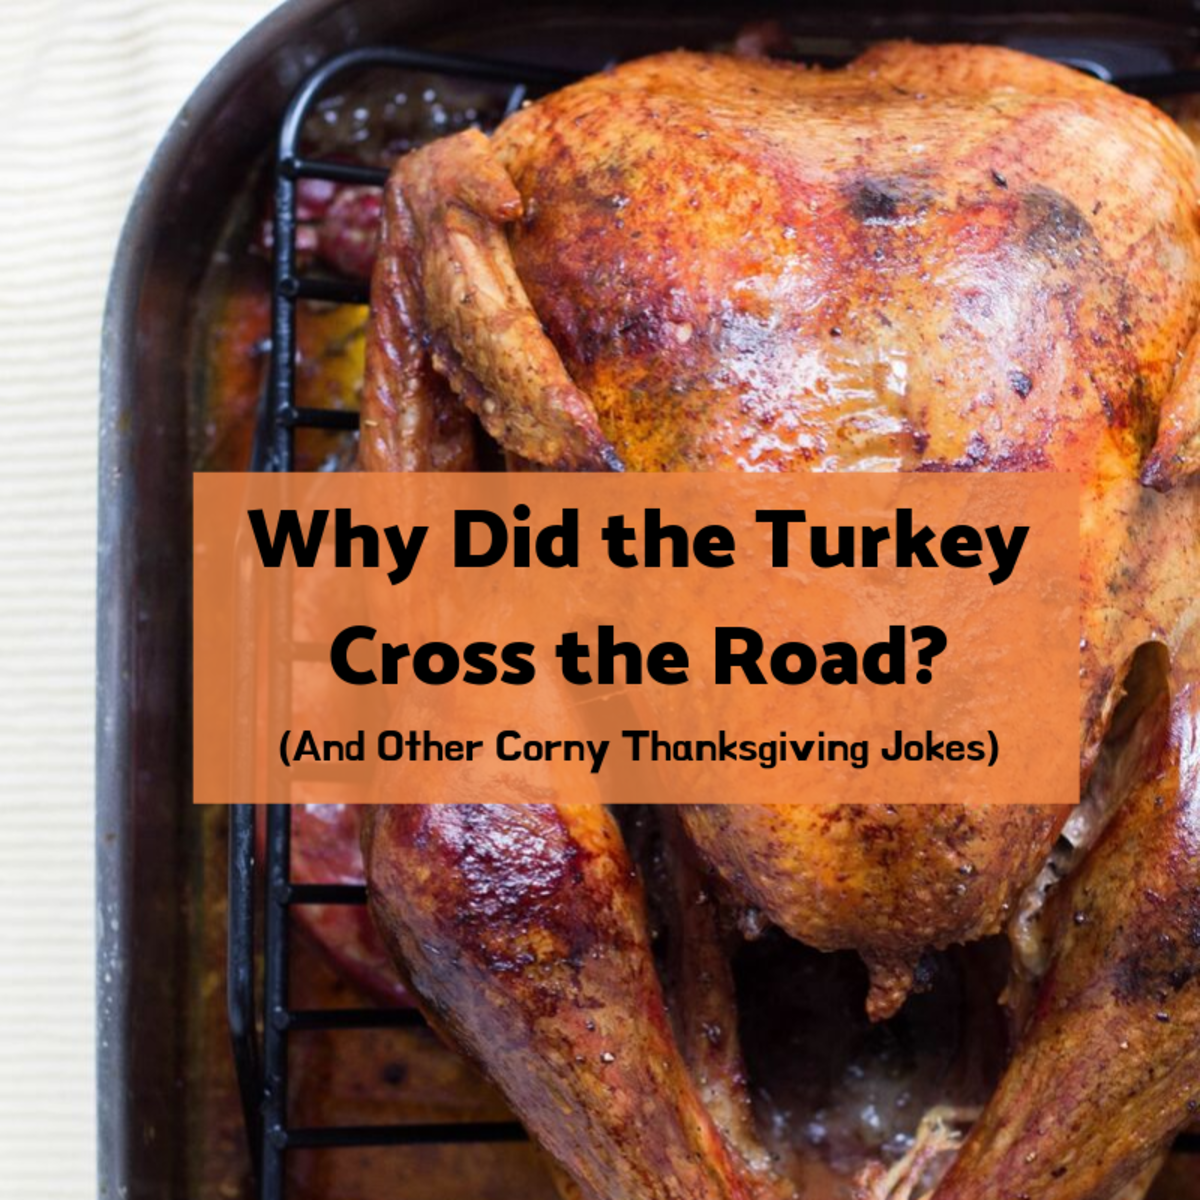 25 Thanksgiving Jokes: Why Did the Turkey Cross the Road?